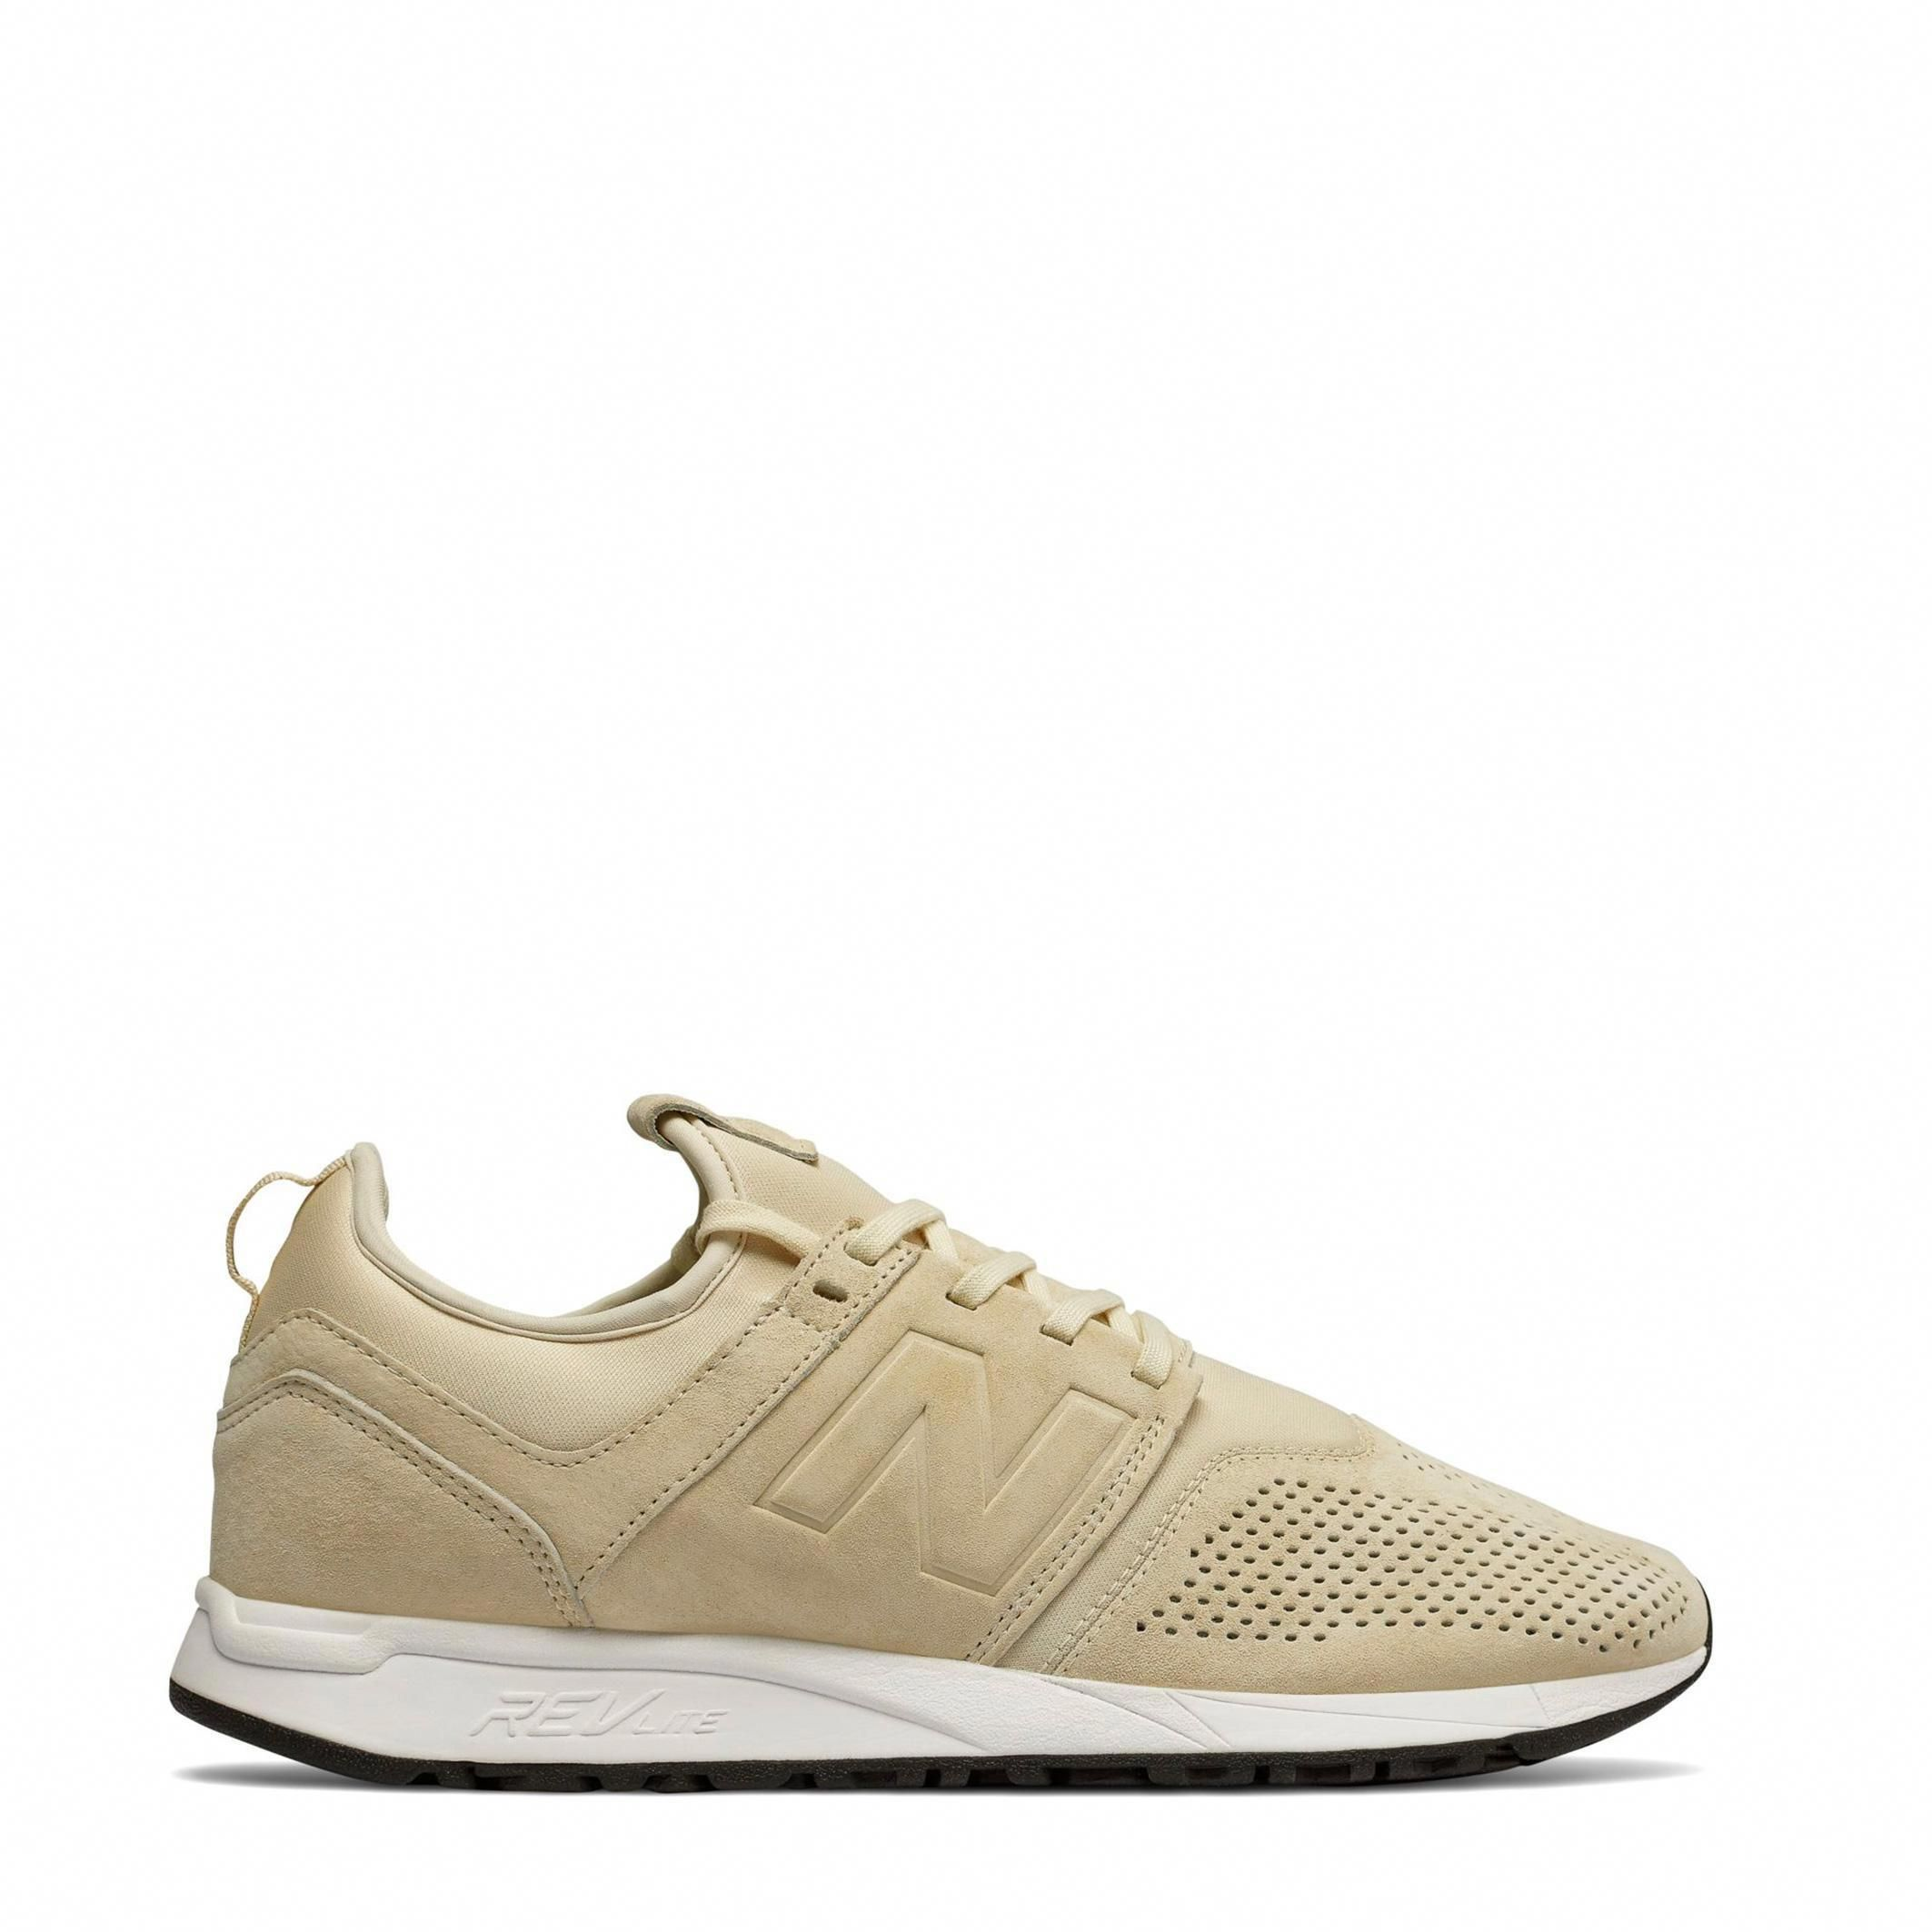 New Balance Mens MRL247 Suede Sneakers Trainers Sport Shoes Brown ...